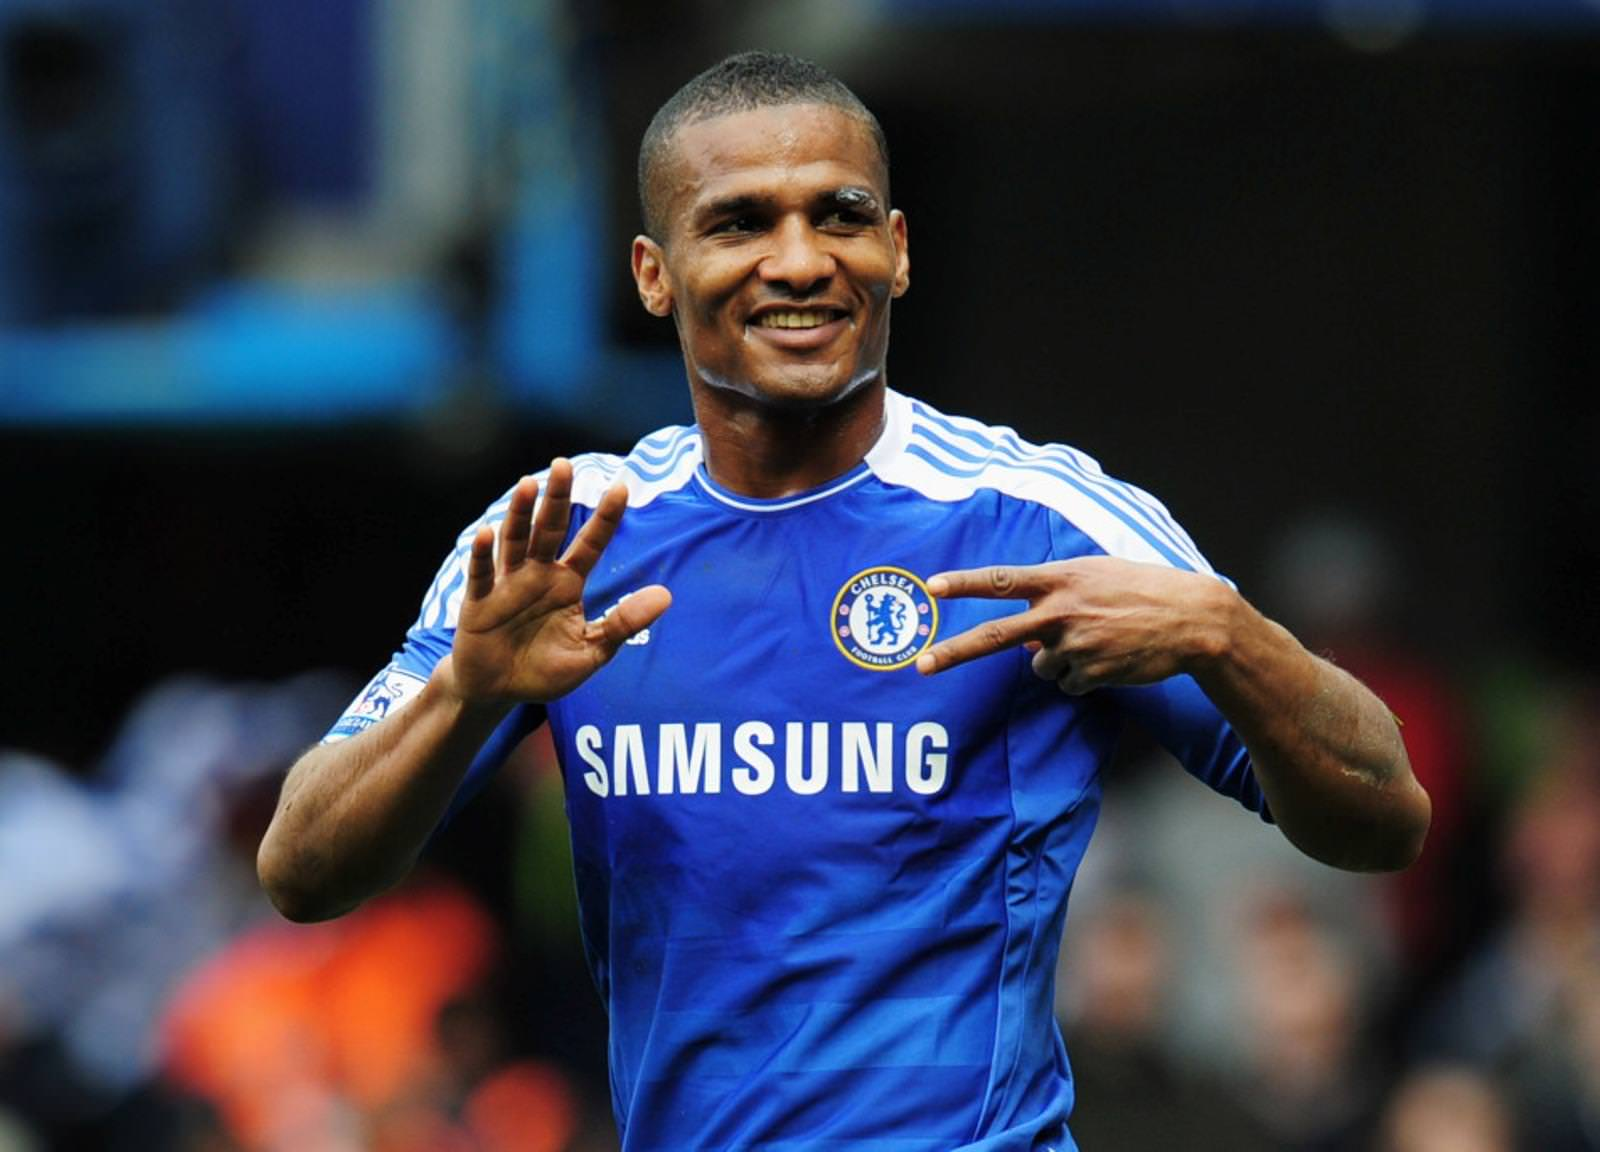 https://i2.wp.com/www.footballparadise.com/wp-content/uploads/2013/06/malouda.jpg?fit=1600%2C1152&ssl=1